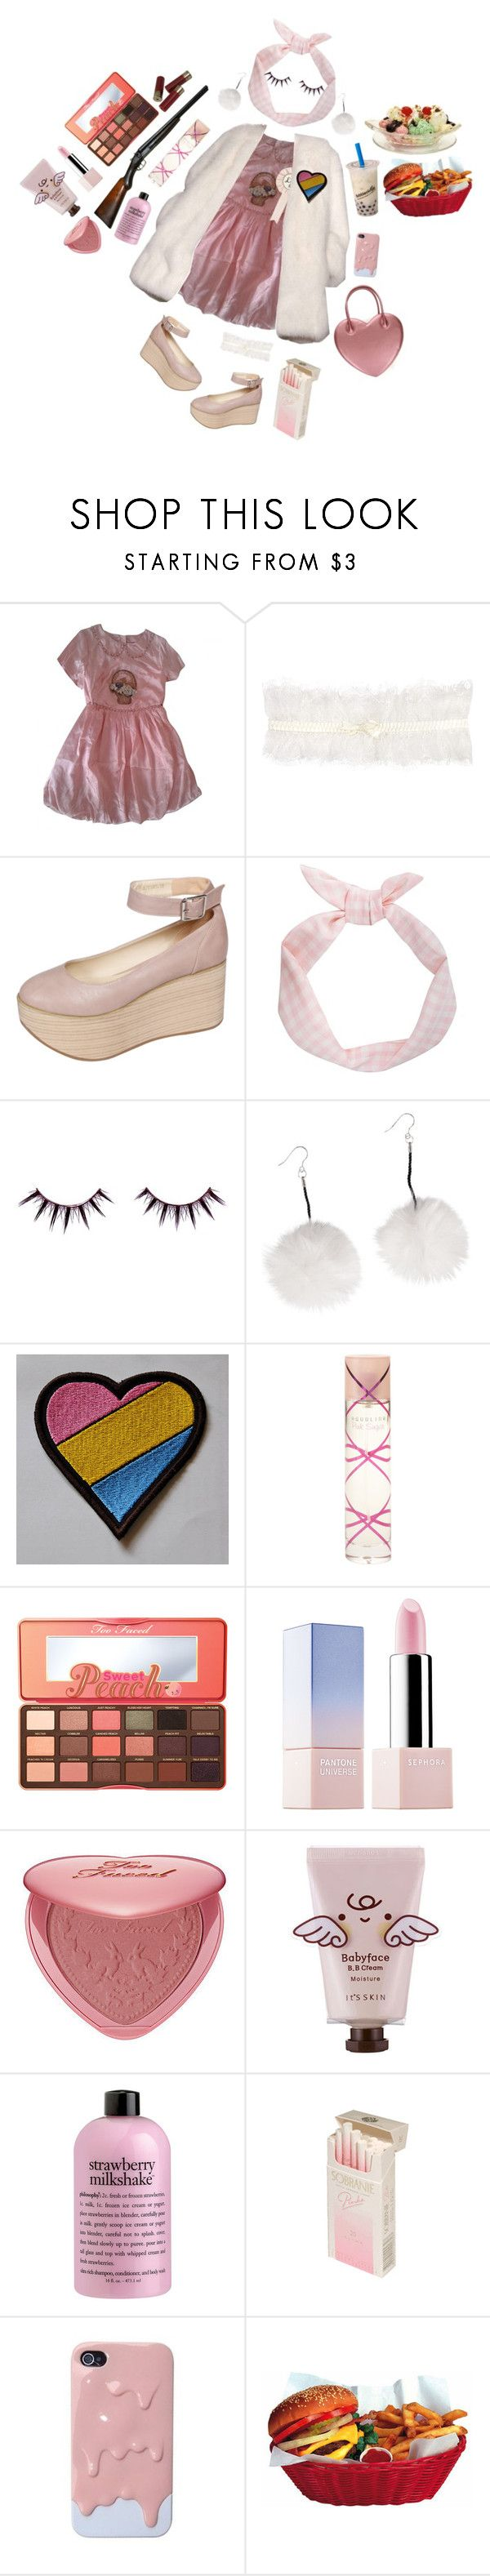 """i love you.. (pt 1)"" by memealicious ❤ liked on Polyvore featuring Manoush, Derek Lam, Somerset by Alice Temperley, Viva La Diva, Pink Sugar, Too Faced Cosmetics, Sephora Collection and philosophy"